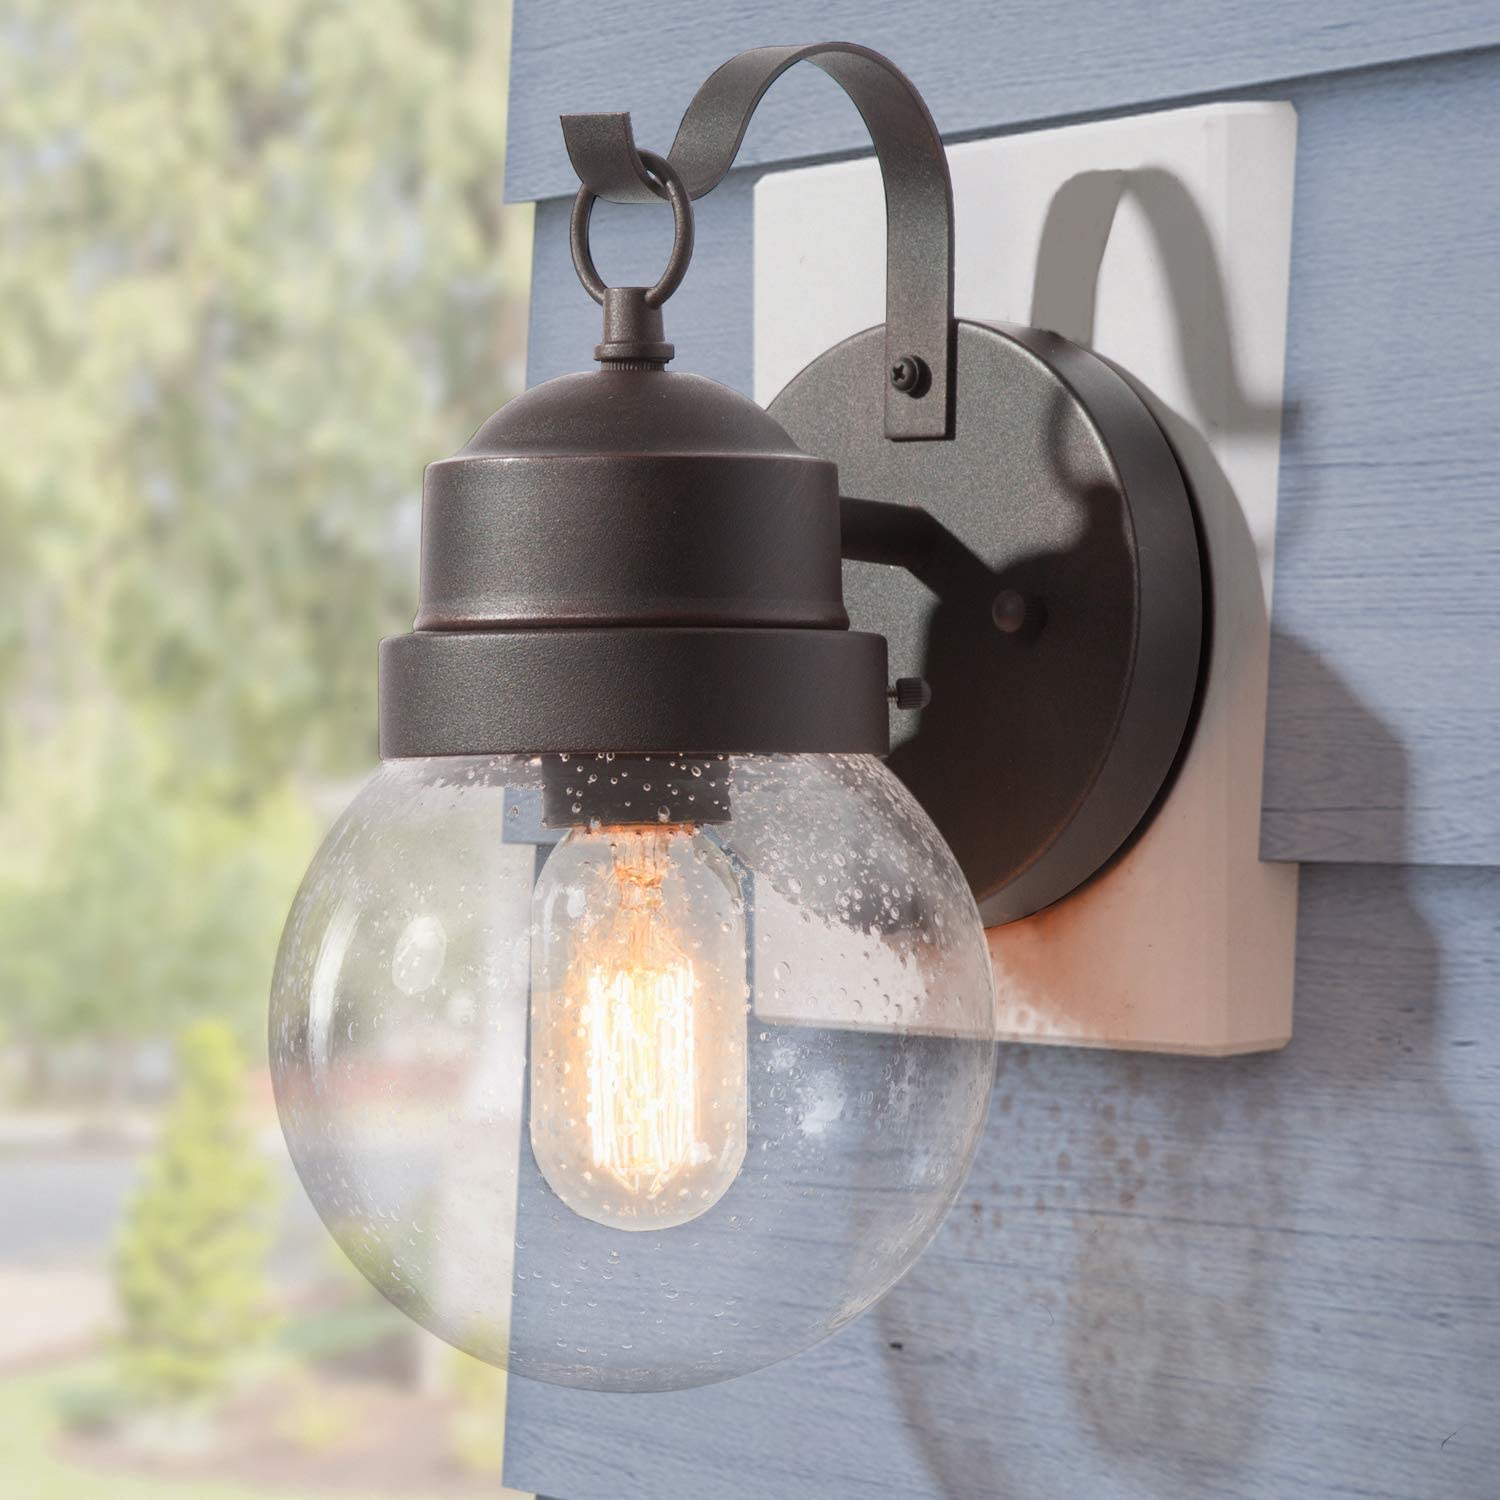 """LOG BARN Outdoor Wall Sconce Modern Spherical Outdoor House Lights Wall Mount with Seeded Glass, Anti-Rust Rustic Bronze Exterior Light Fixture for Porch, Yards, Garage, E26 Socket, 11""""H"""